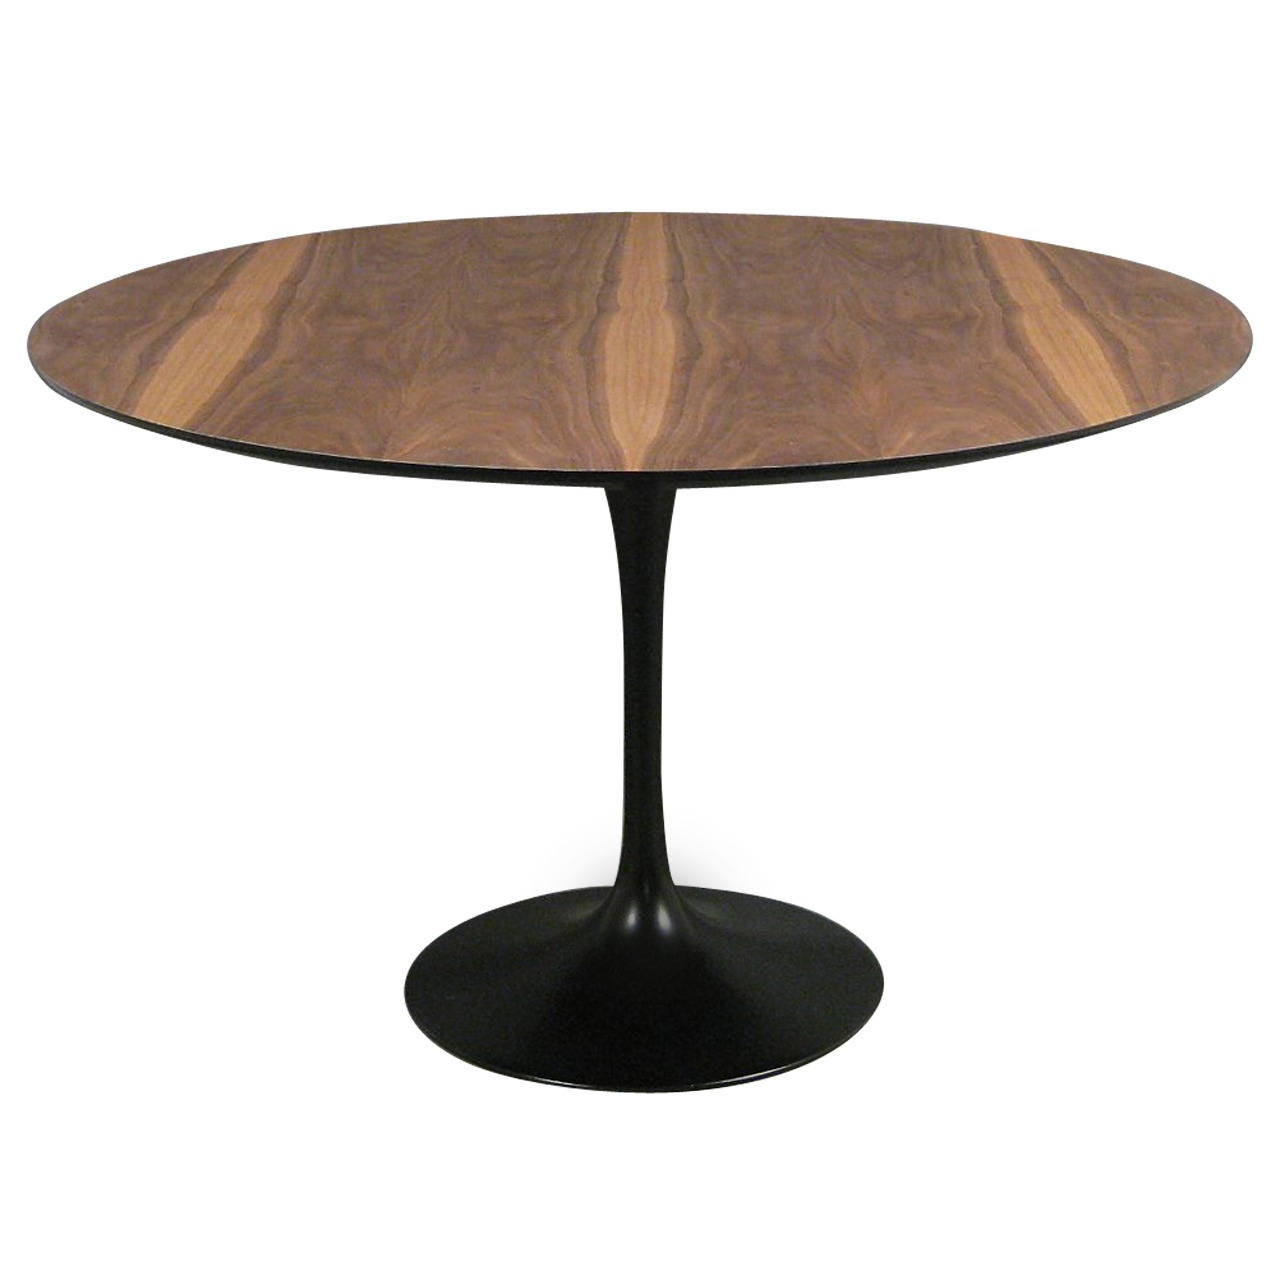 Eero Saarinen Tulip Dining Table By Knoll At 1stdibs